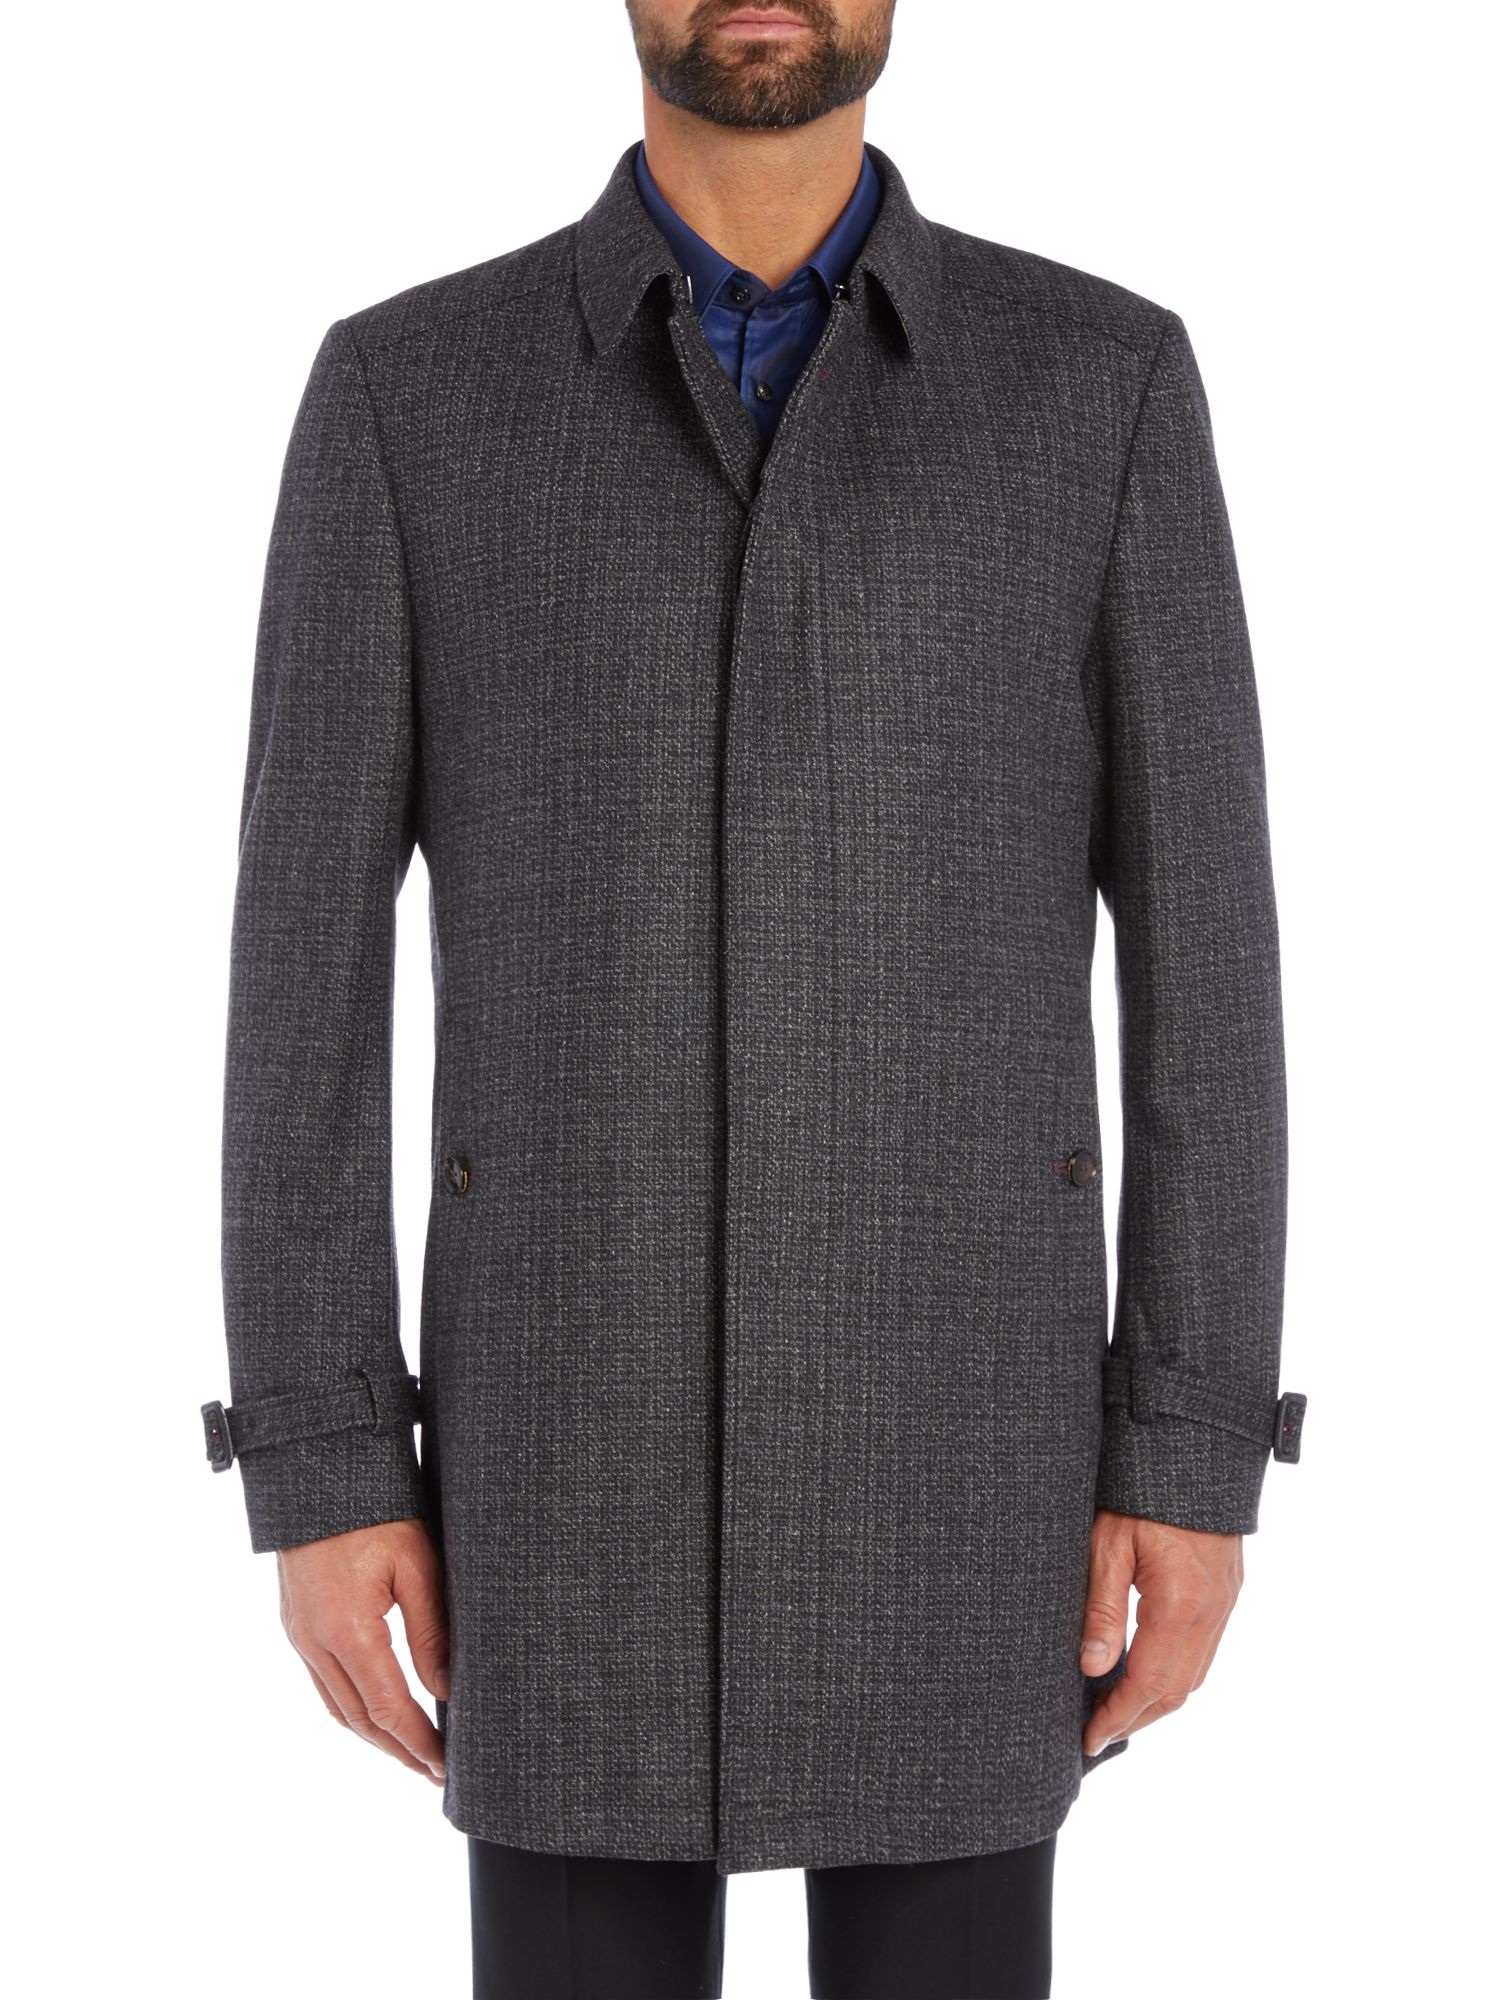 Ted Baker Wool Alabama Textured Coat In Charcoal Gray